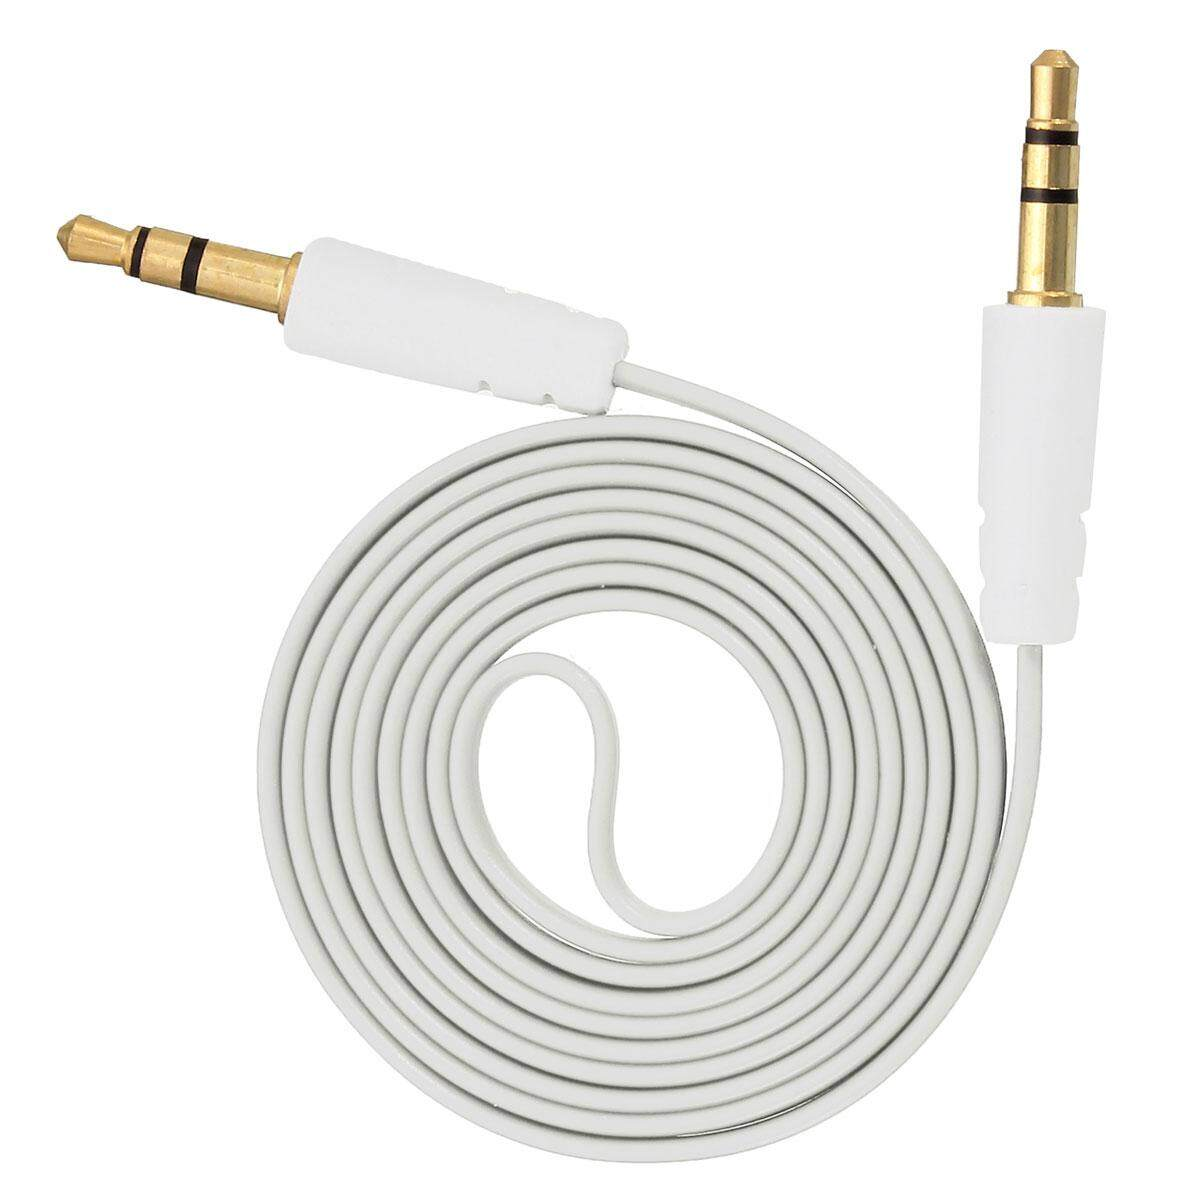 3.5mm Male To Male Flat Noodle Stereo Audio Aux Cable Cord For Iphone Car By Threegold.